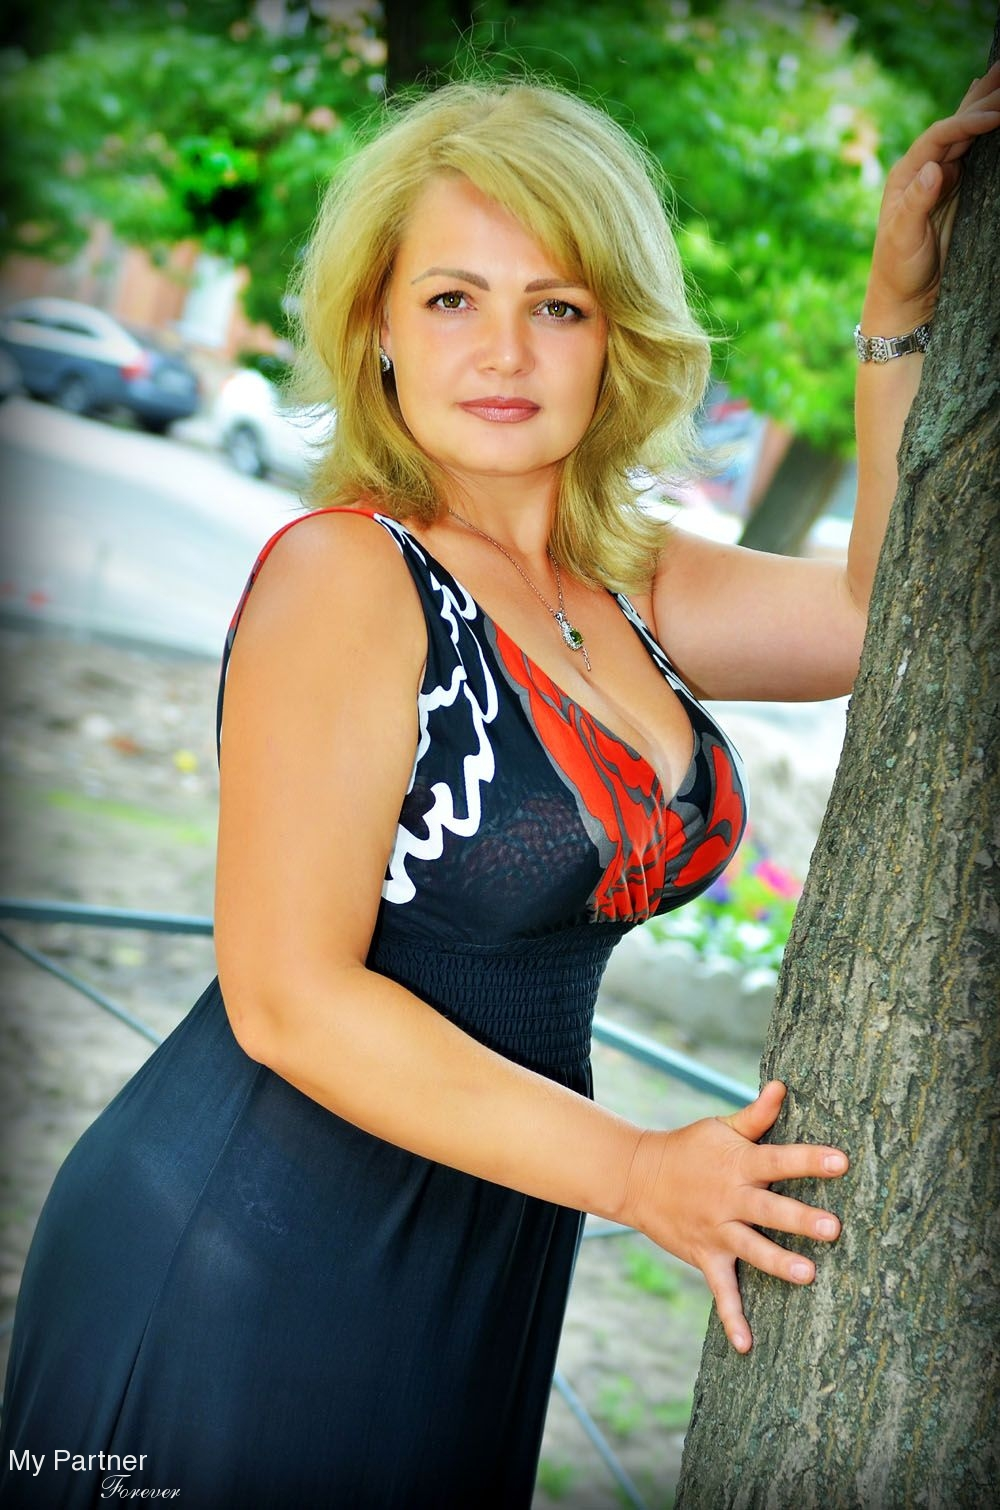 earleton divorced singles personals Brazil divorced dating, find single men or women find amazing impressions communicating and flirting with divorced single people in.